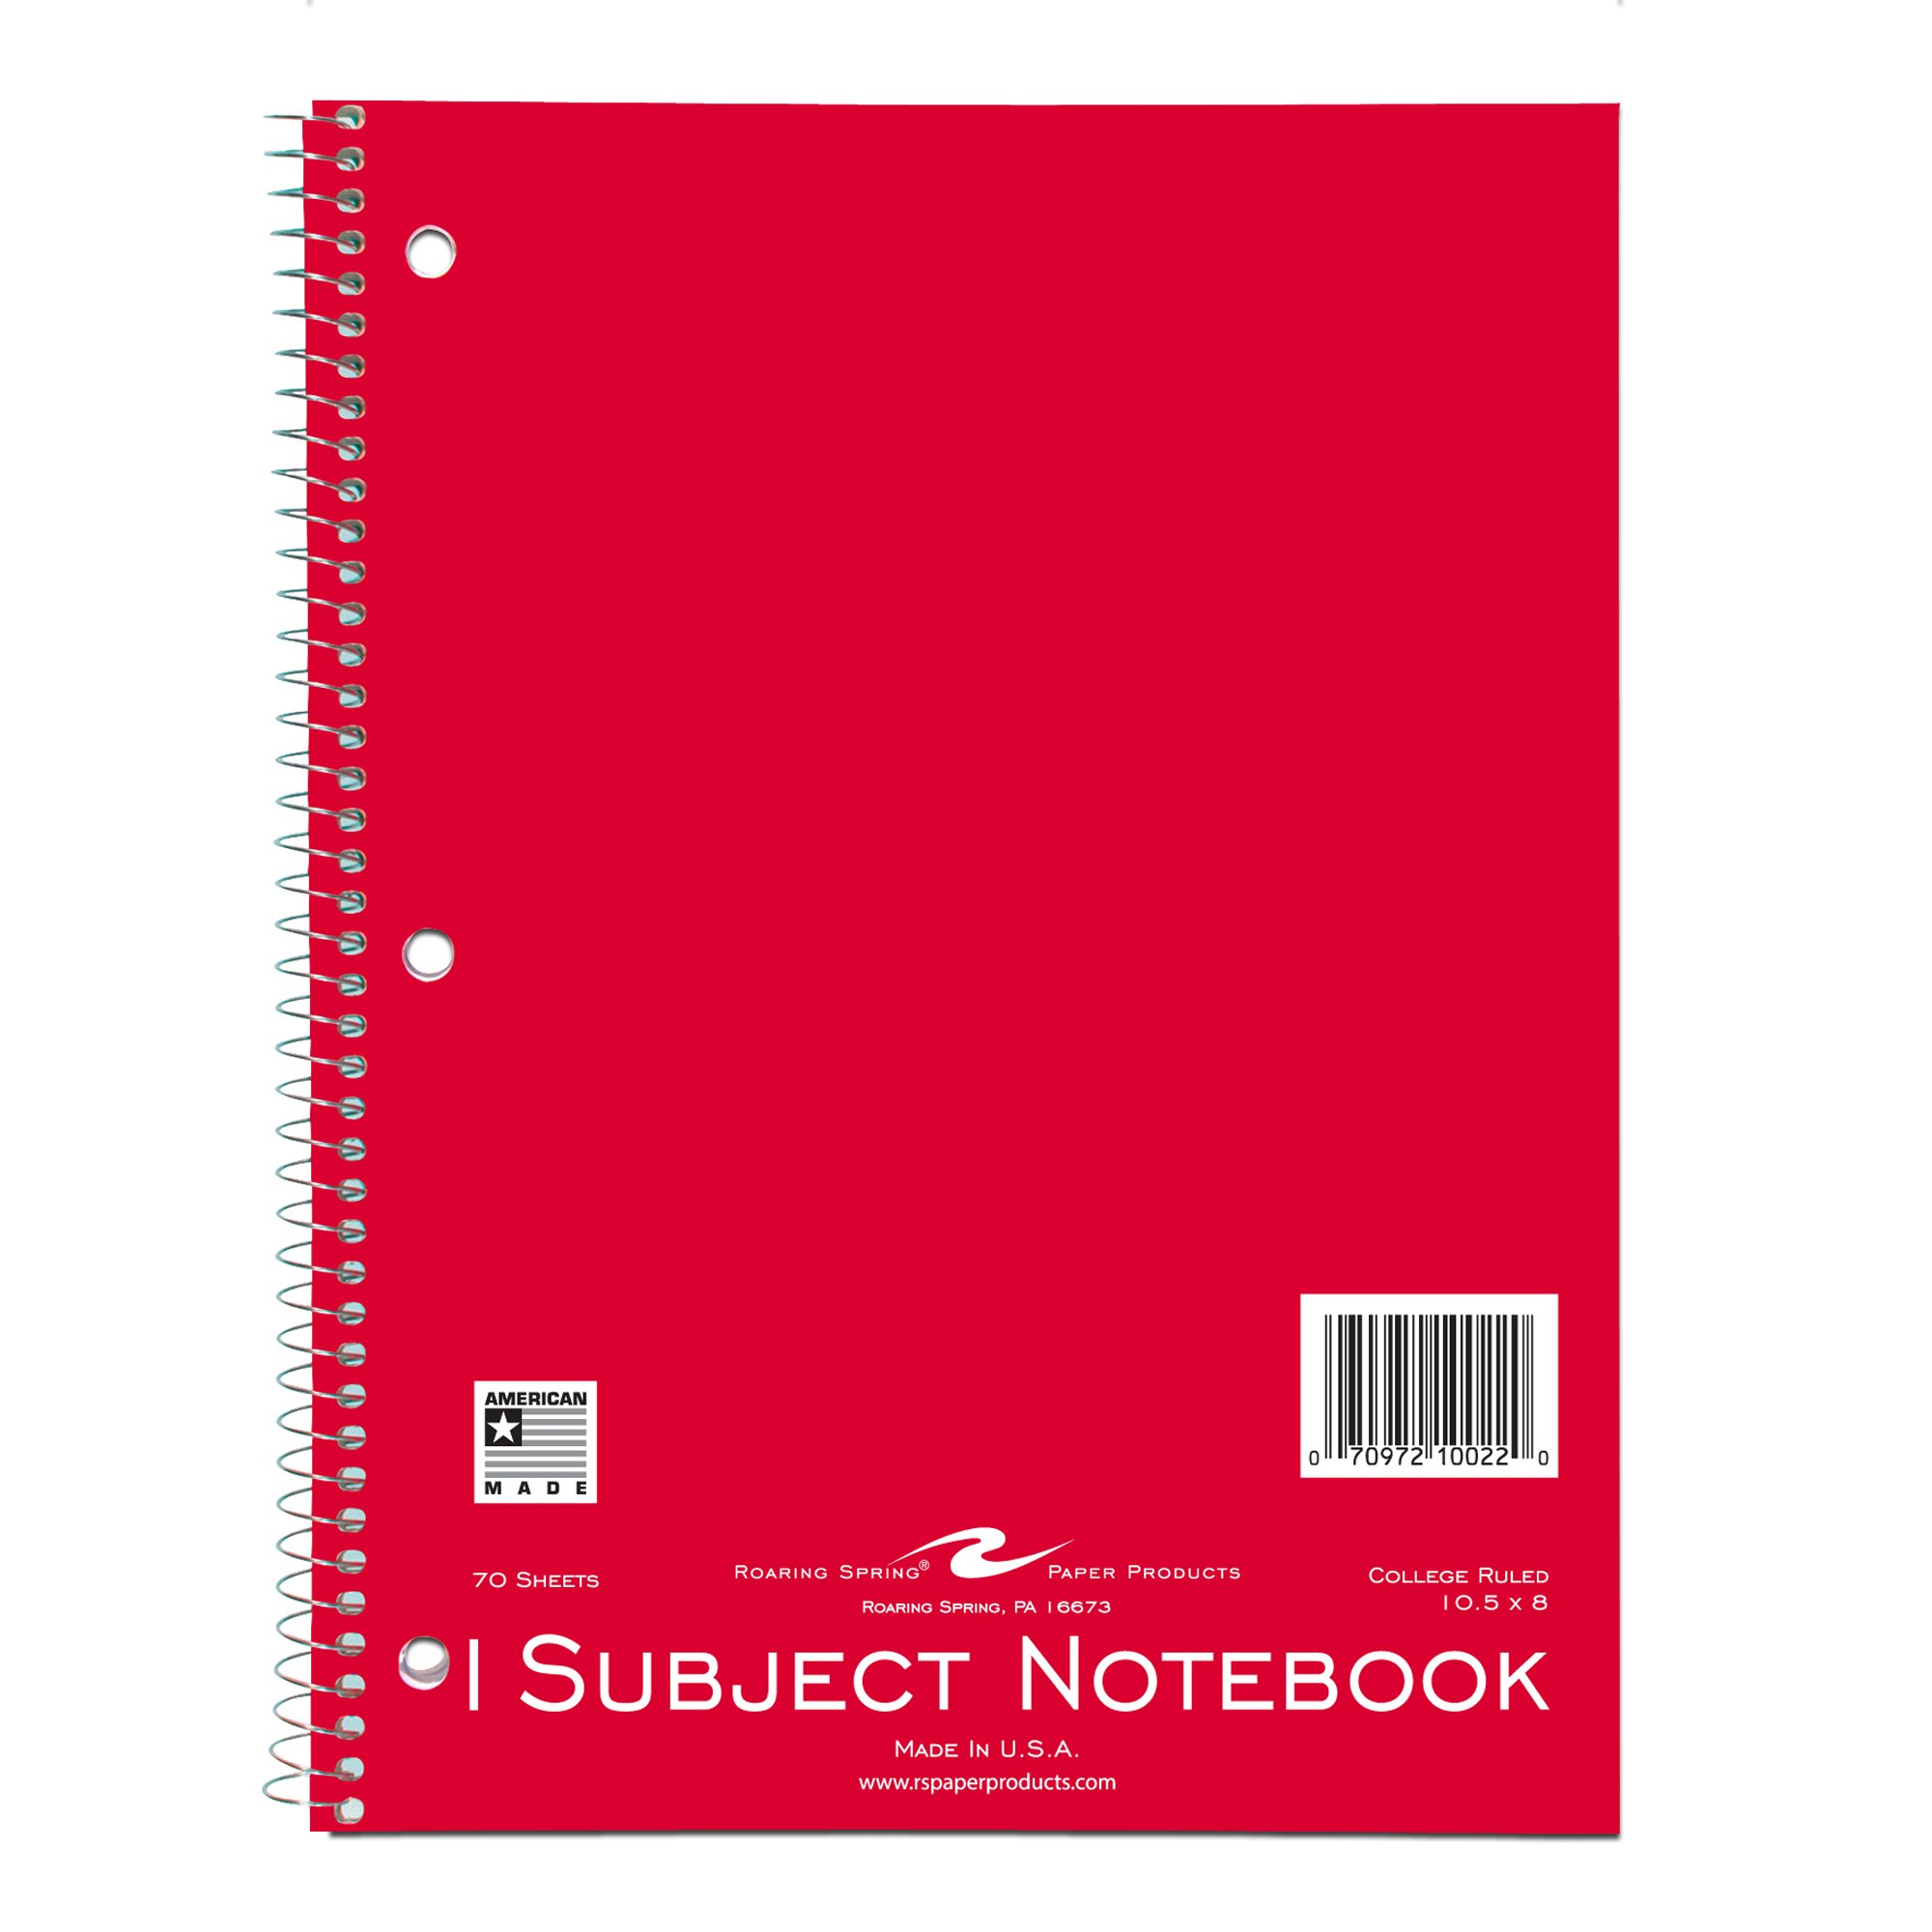 Roaring Spring Wirebound Notebook, One Subject, 10.5 x 8 Inches, 70 Sheets, College Ruled, Assorted Color Covers (10022)